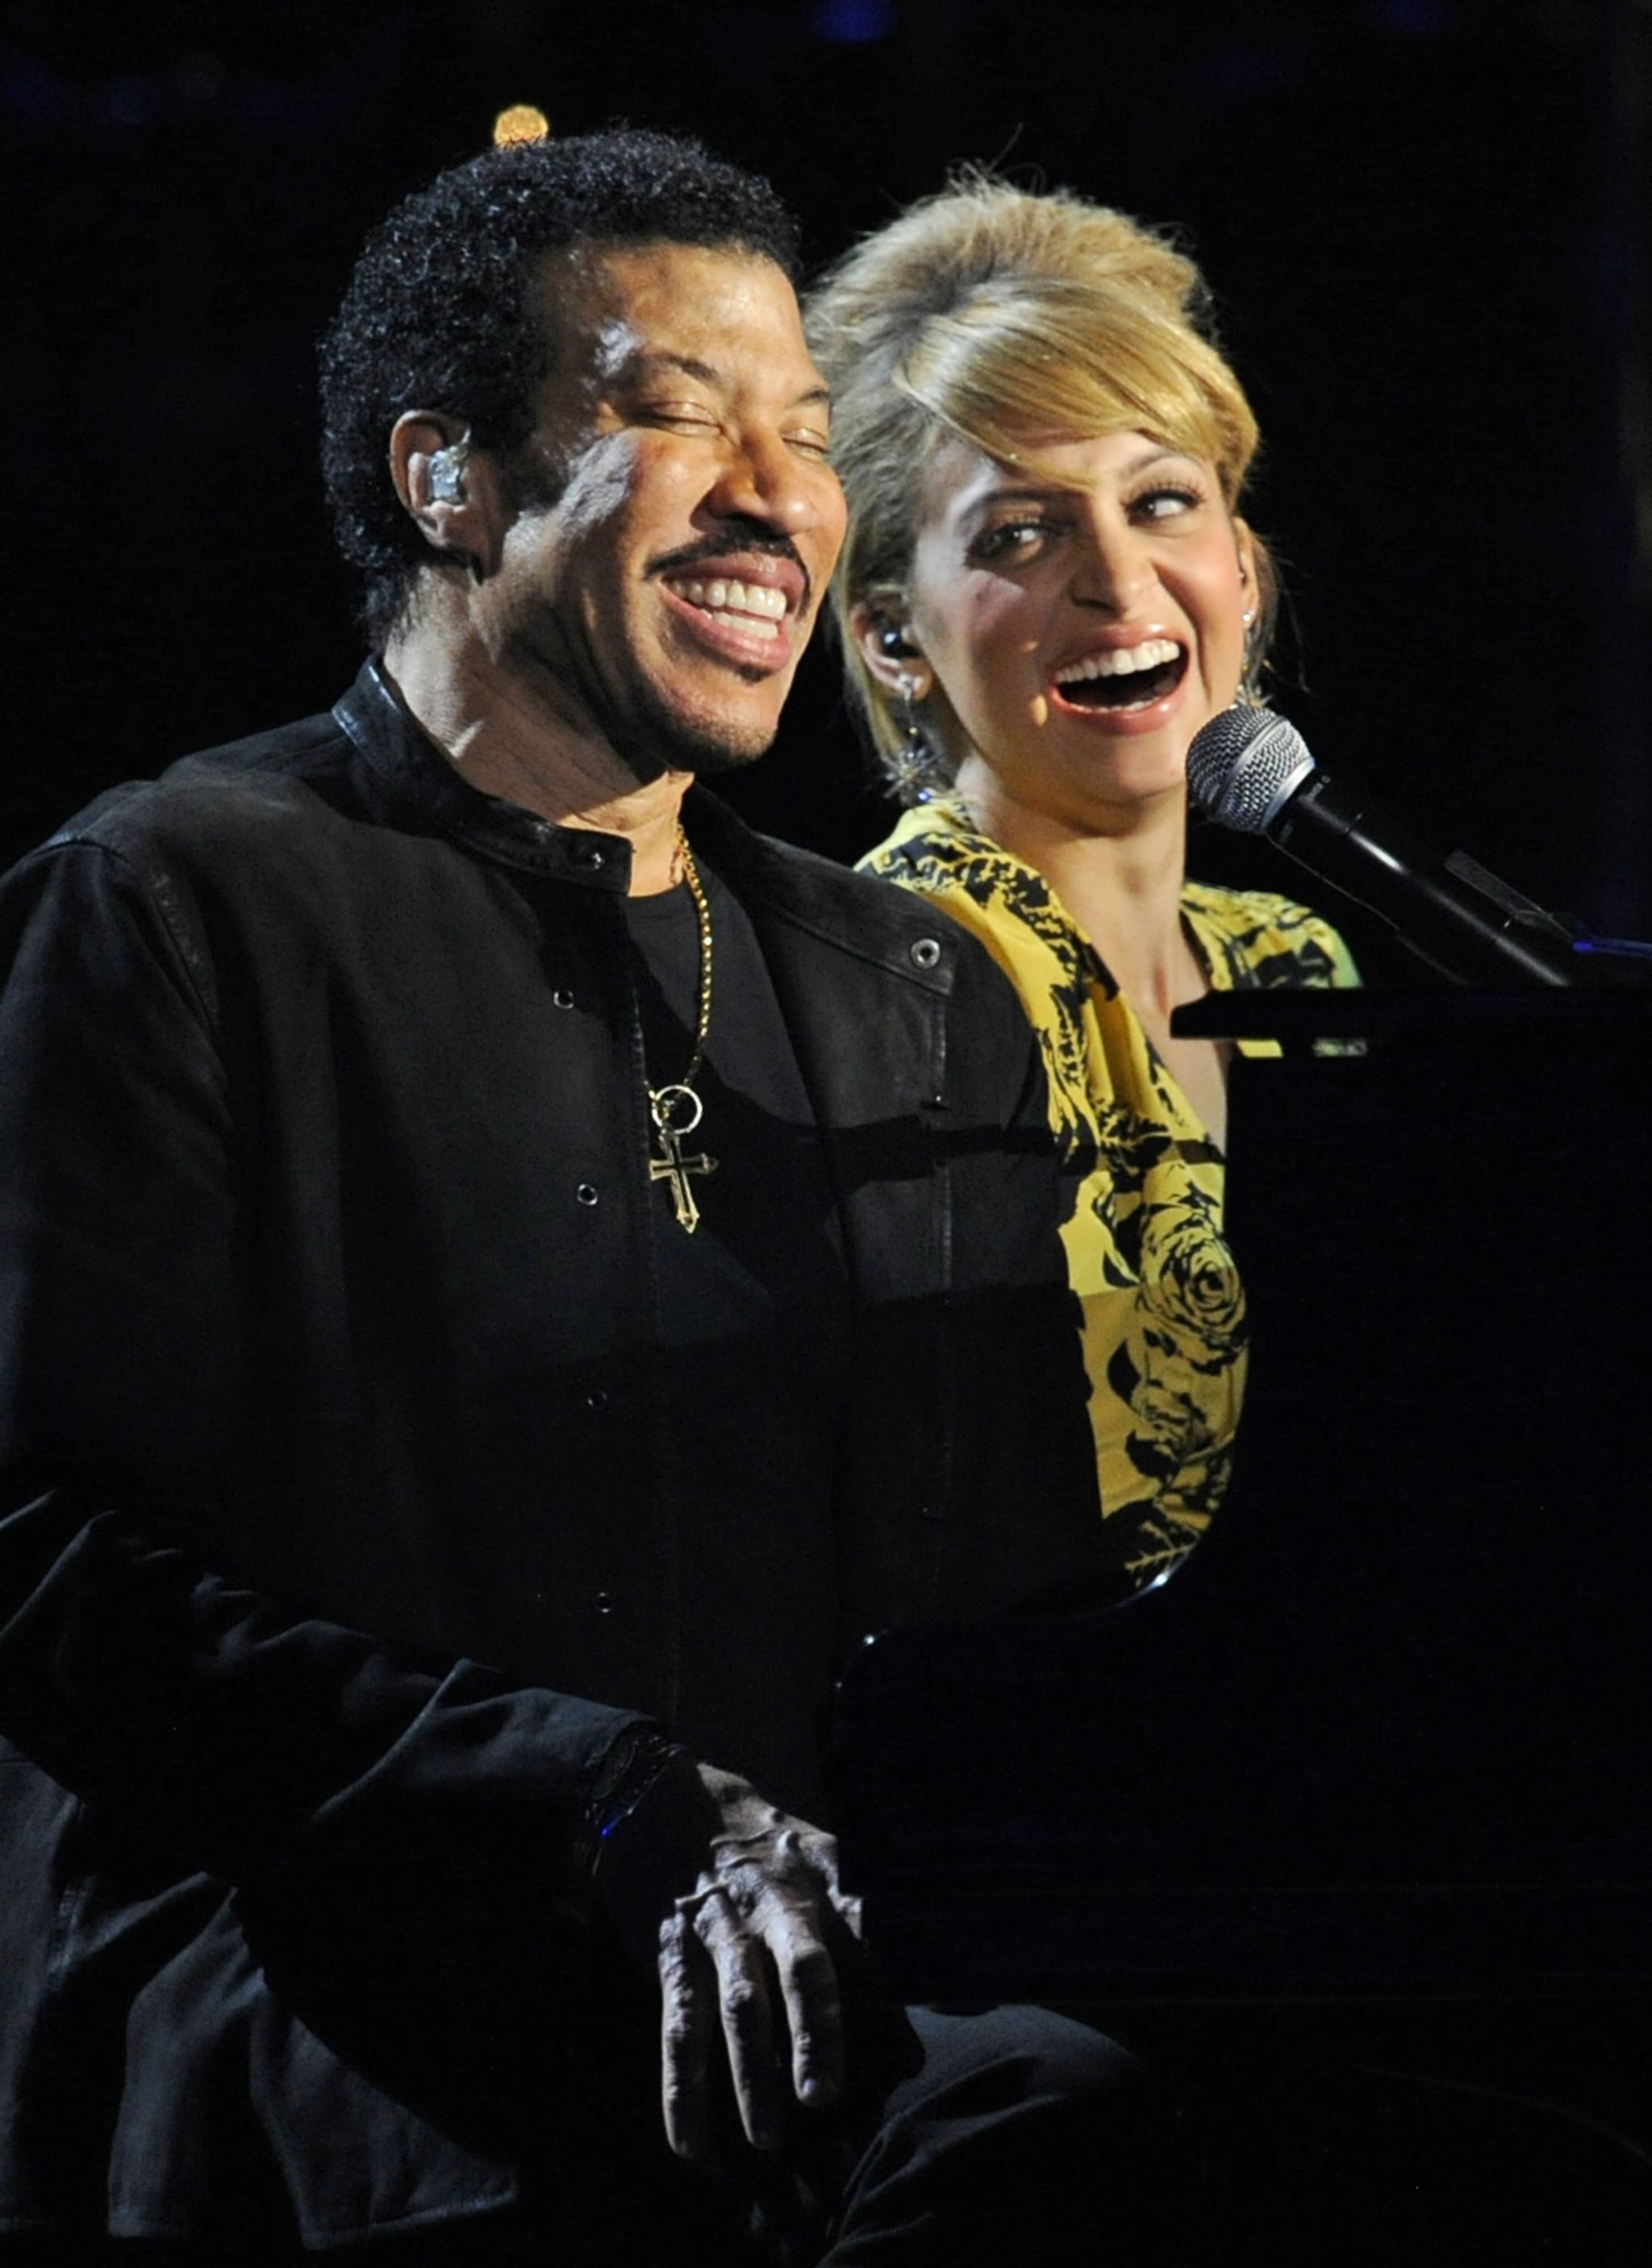 She joined her dad, Lionel, on stage during his special Las Vegas concert in April 2012 —so sweet!